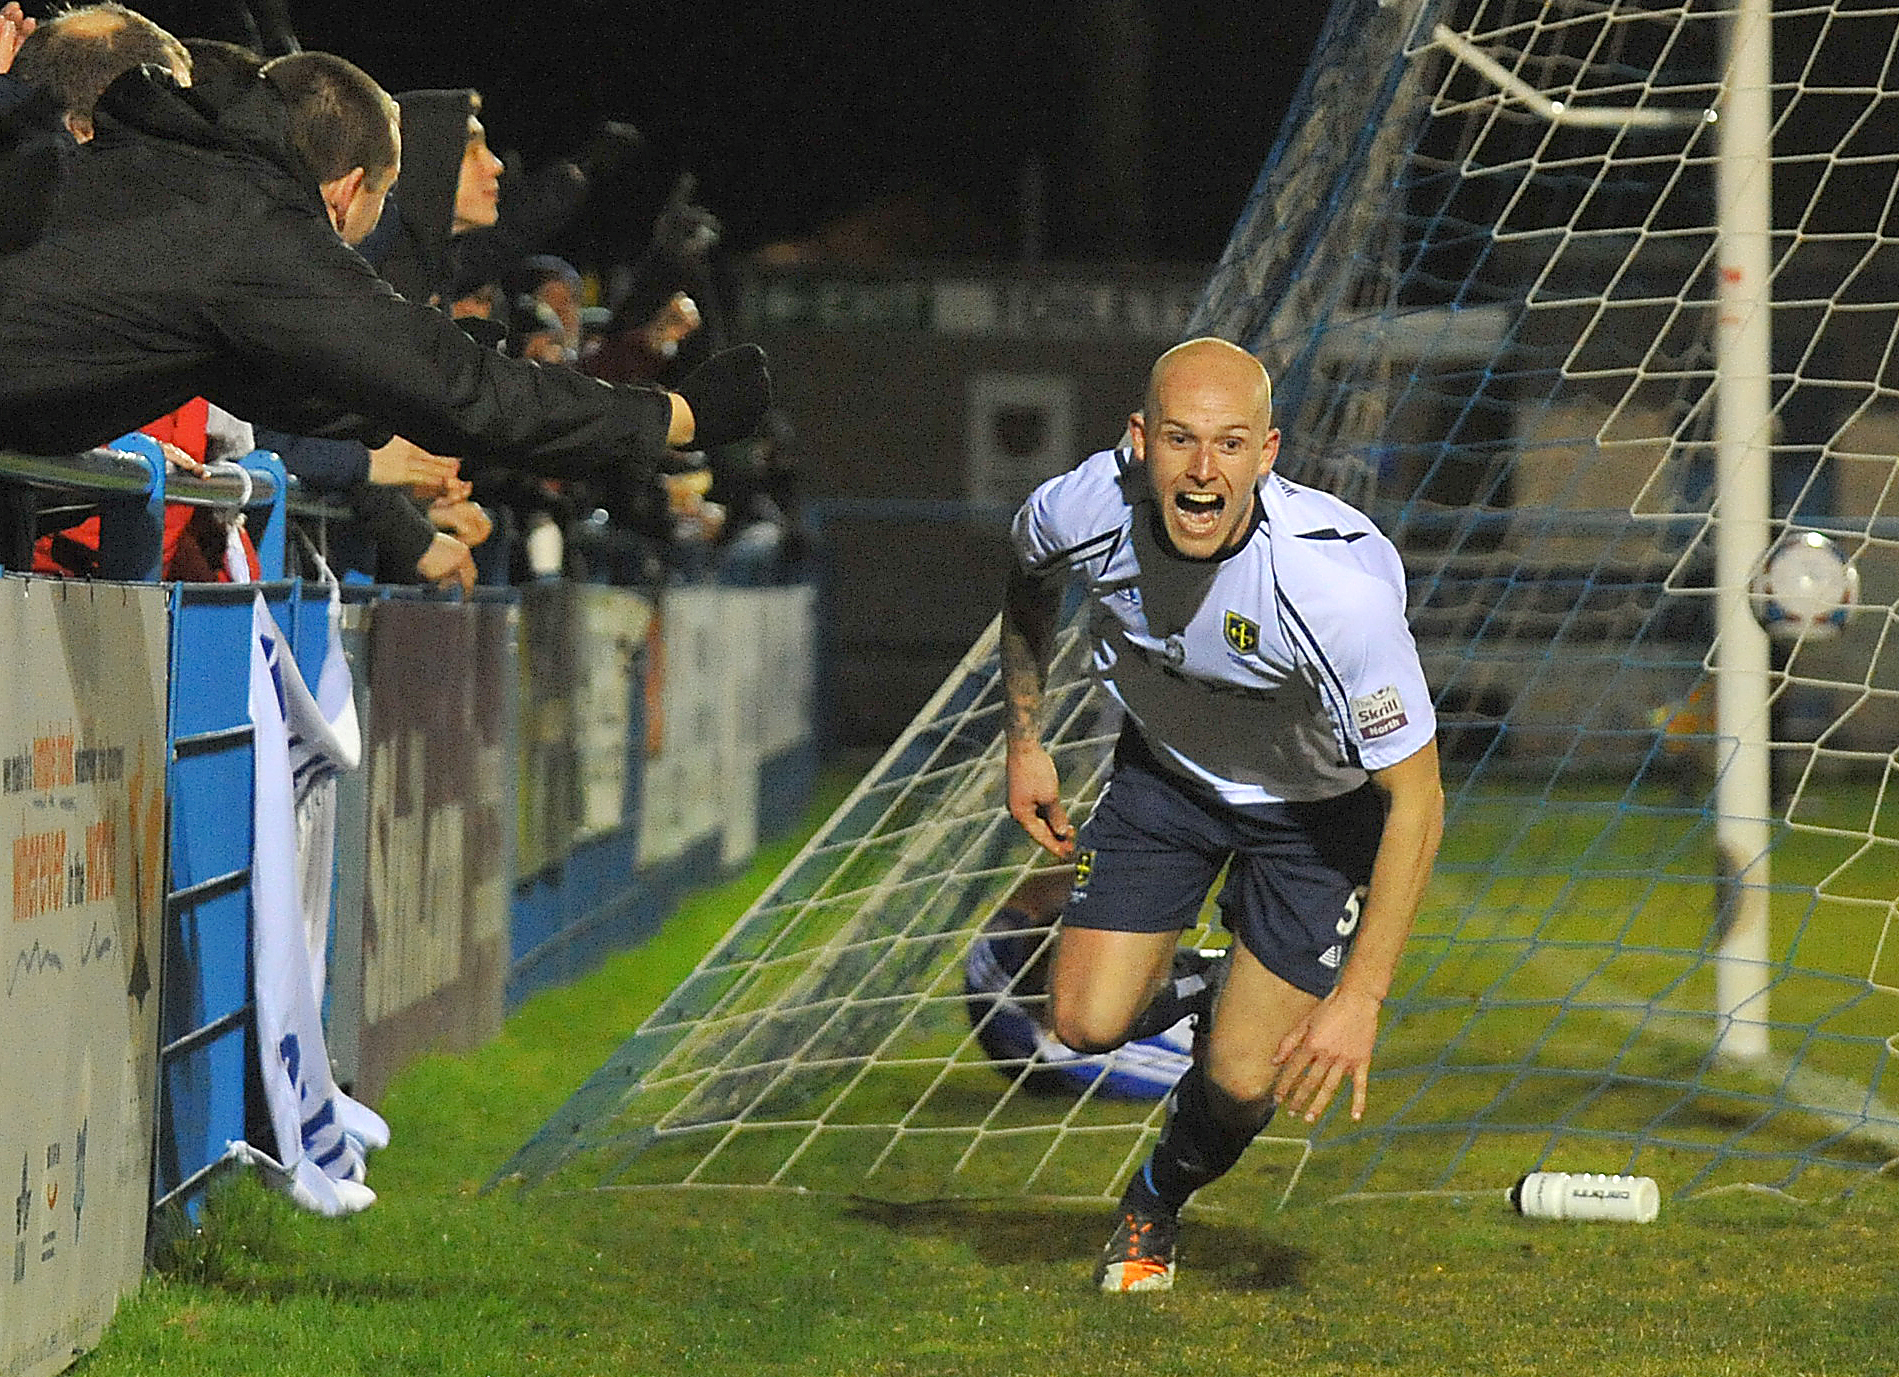 NO RESPITE: Danny Ellis scores in Tuesday's 3-1 win against Stalybridge, which was the Lions' fourth midweek game in a row – and that pattern continues until the end of the season